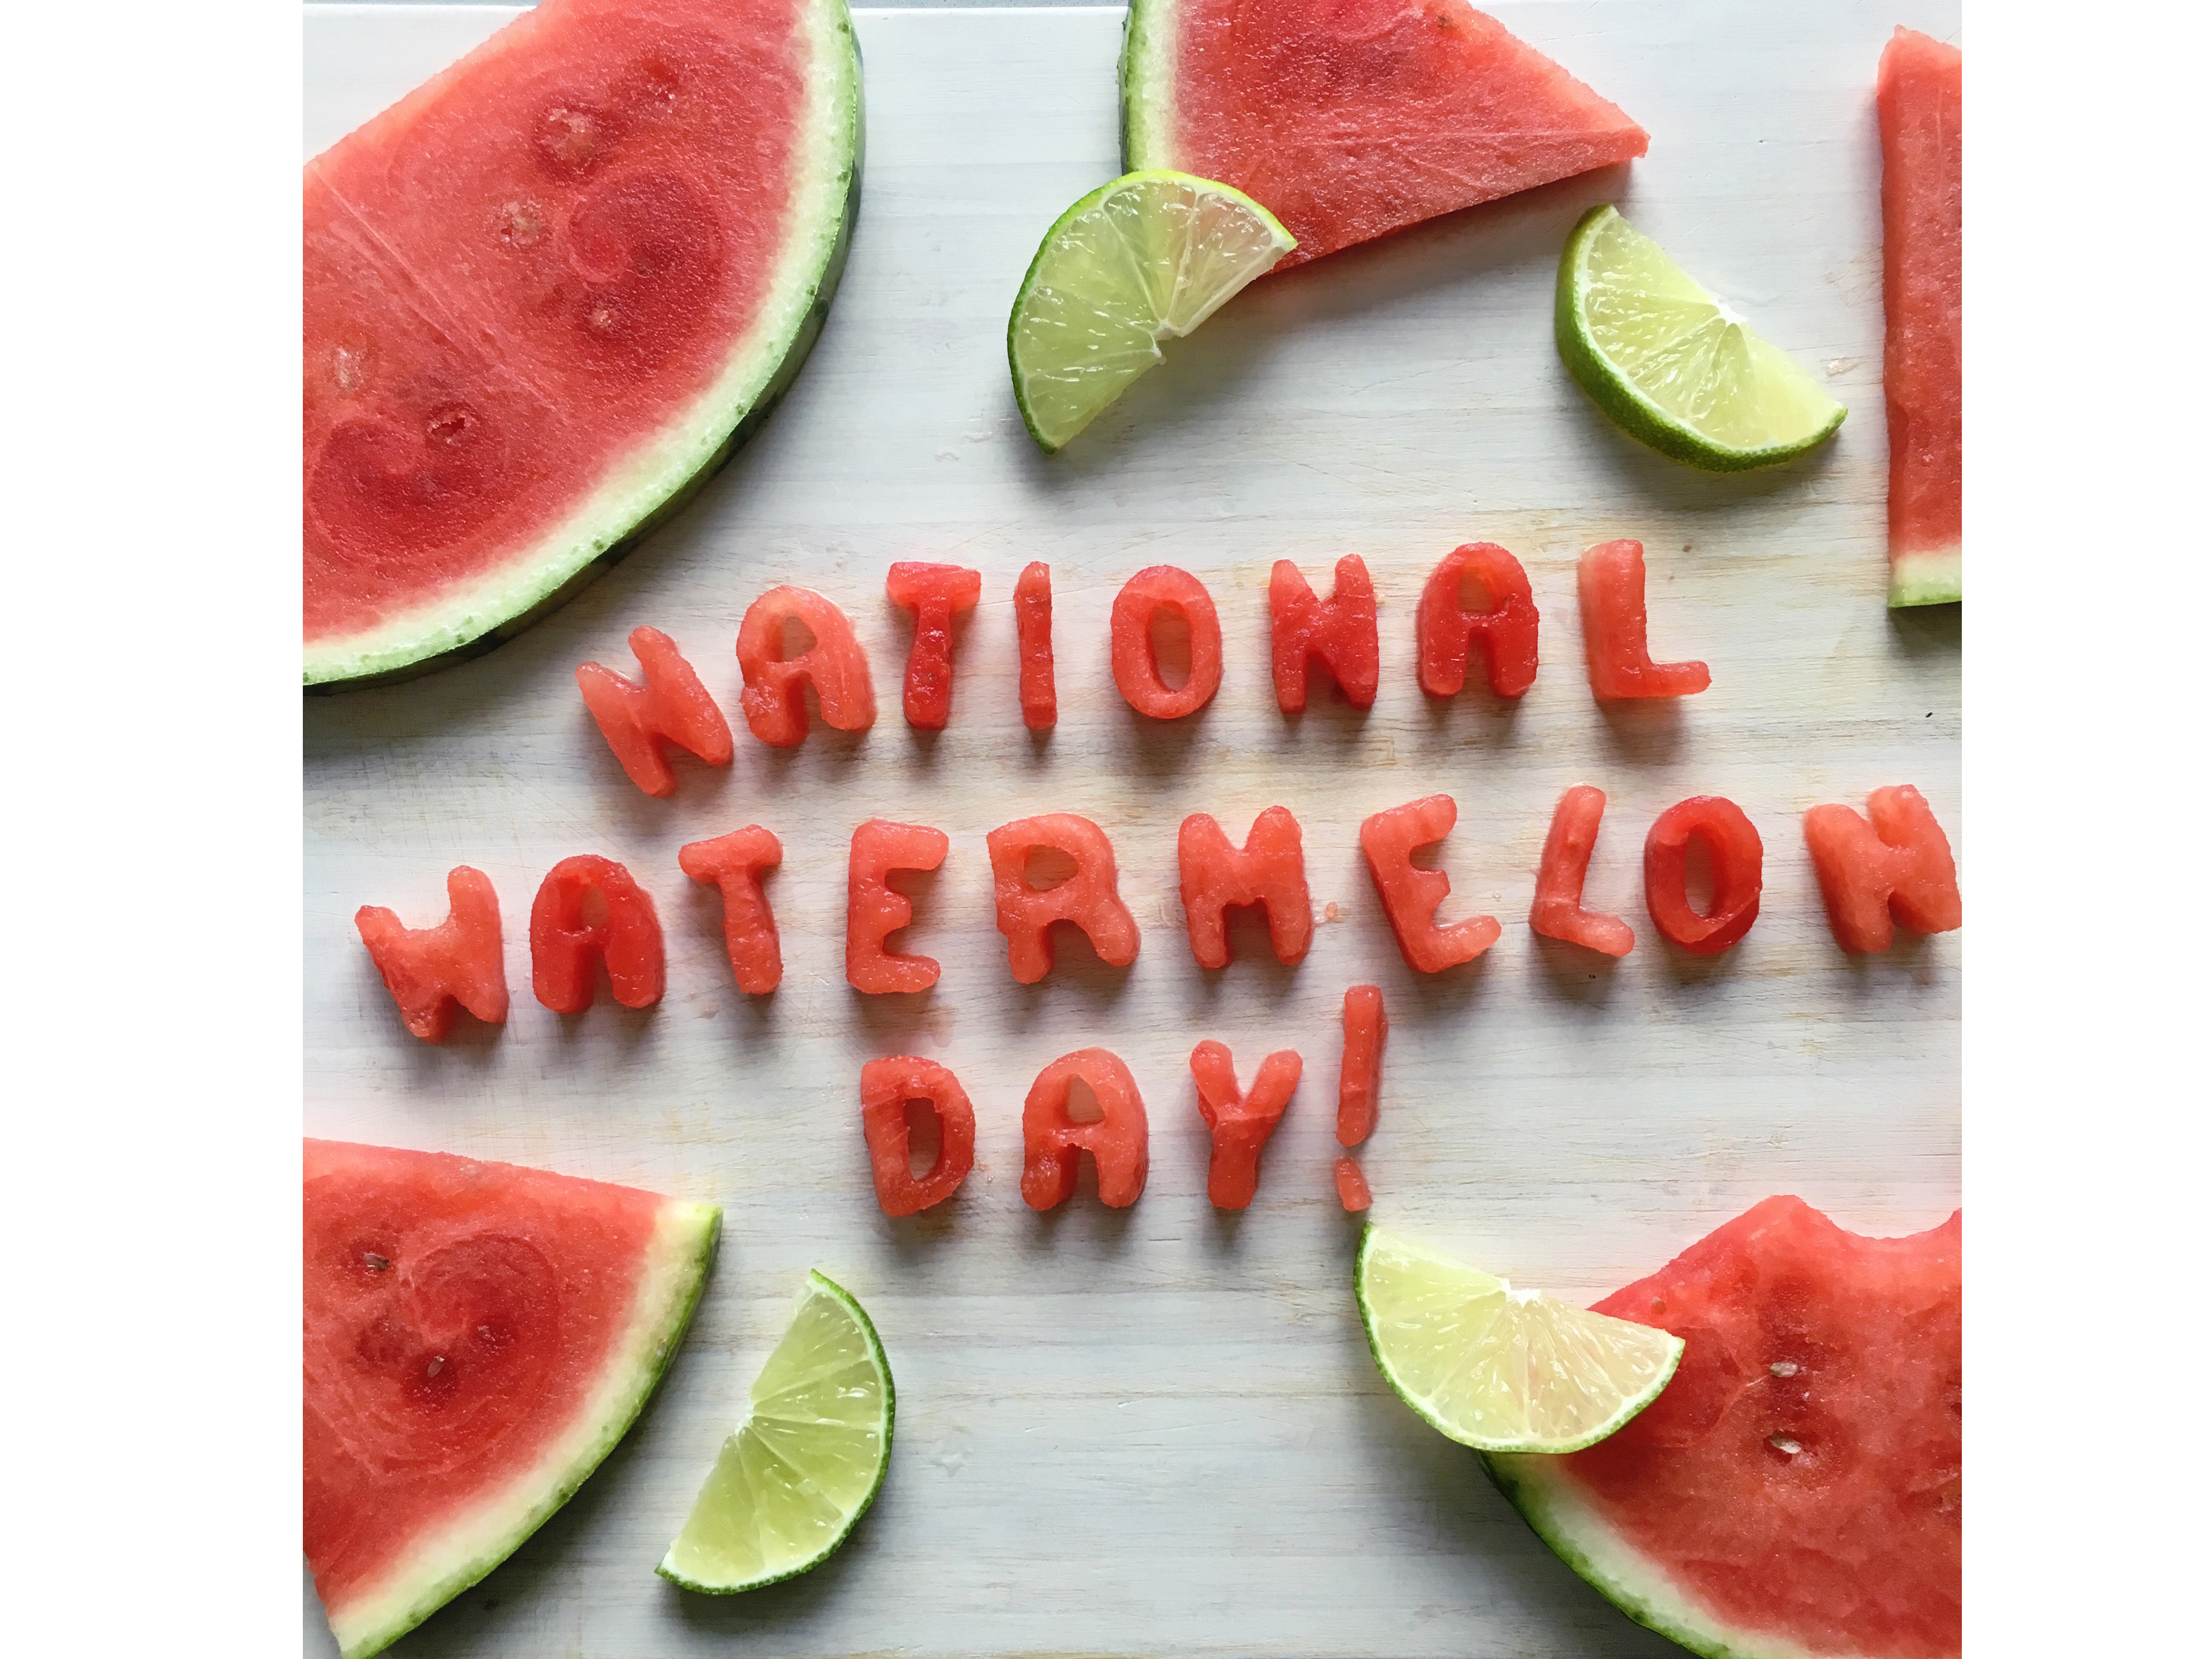 national watermelon day image